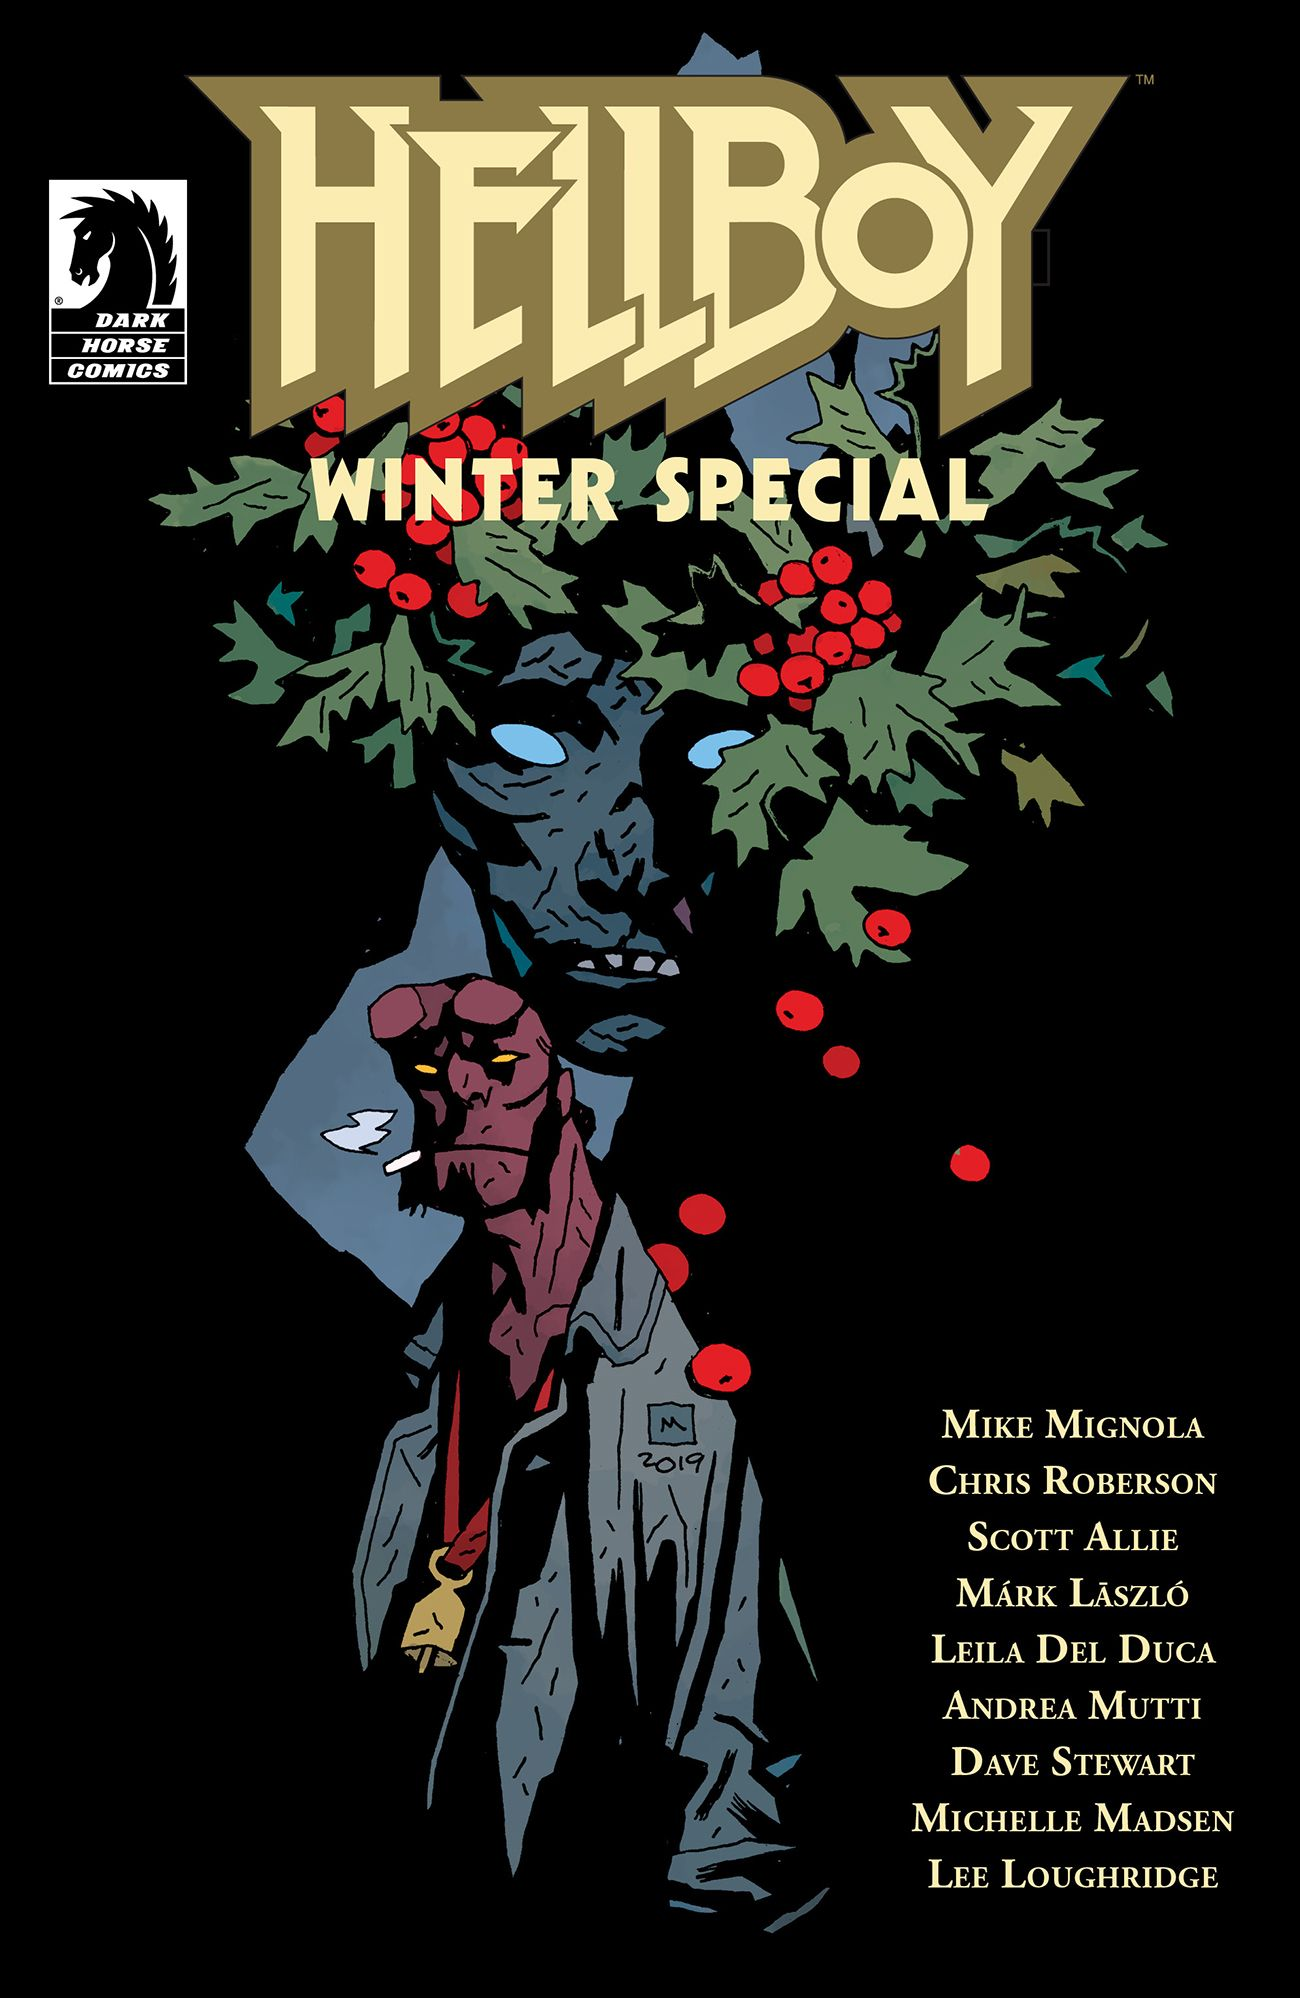 Review: Hellboy Winter Special 2019 Is a Mixed Bag | CBR